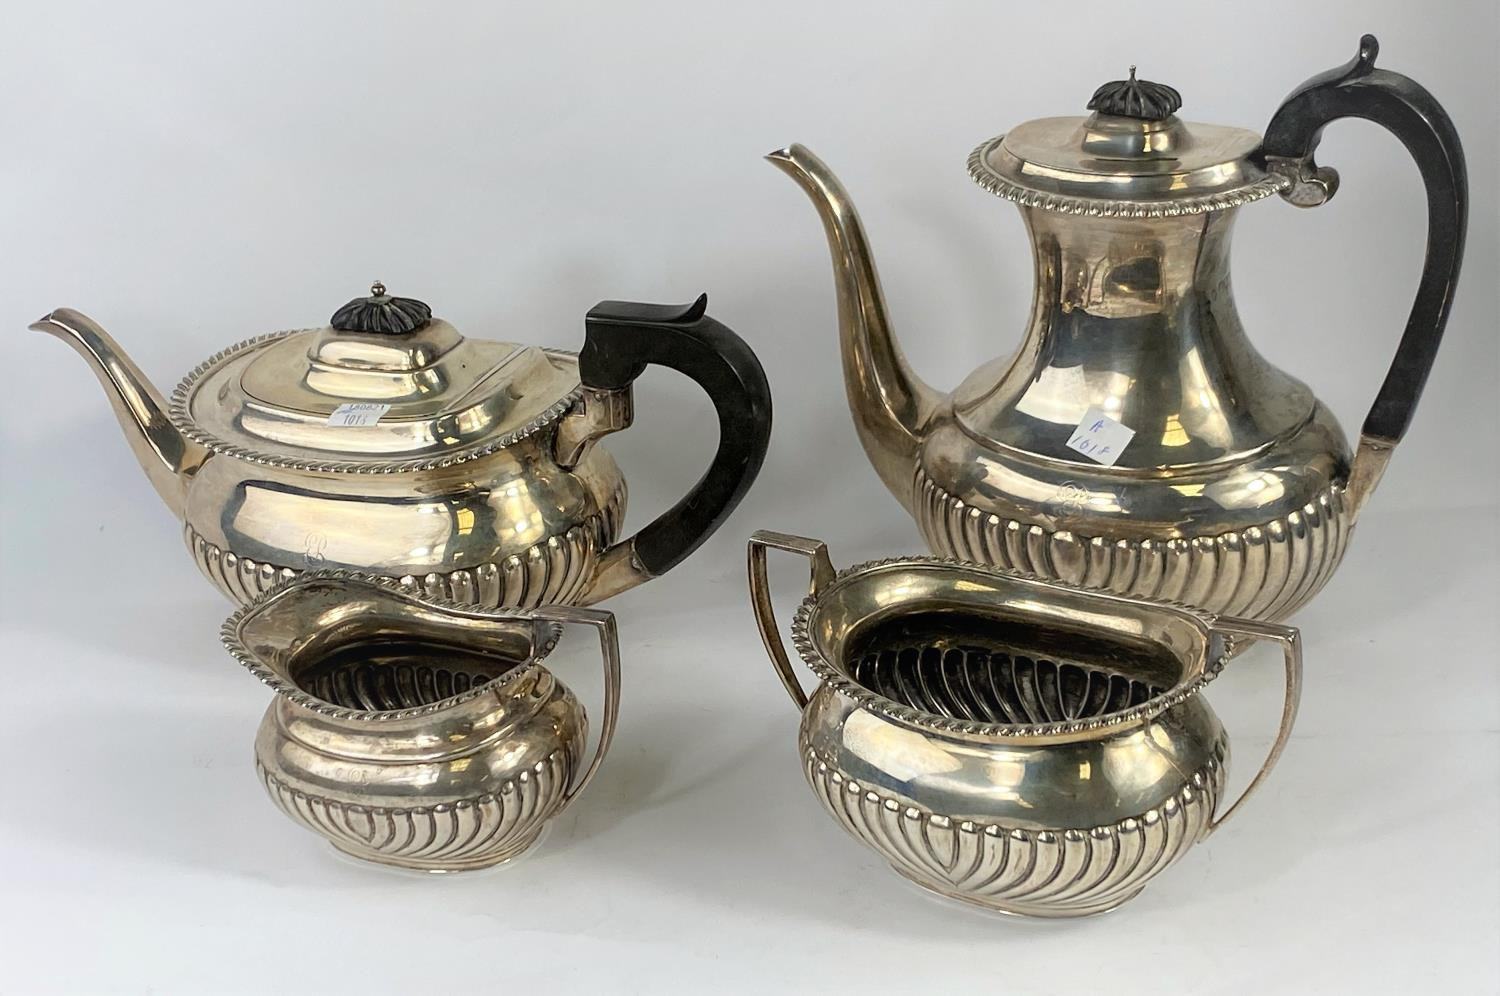 A hallmarked silver 4 piece tea set in the Georgian rounded rectangular style, with gadrooned and